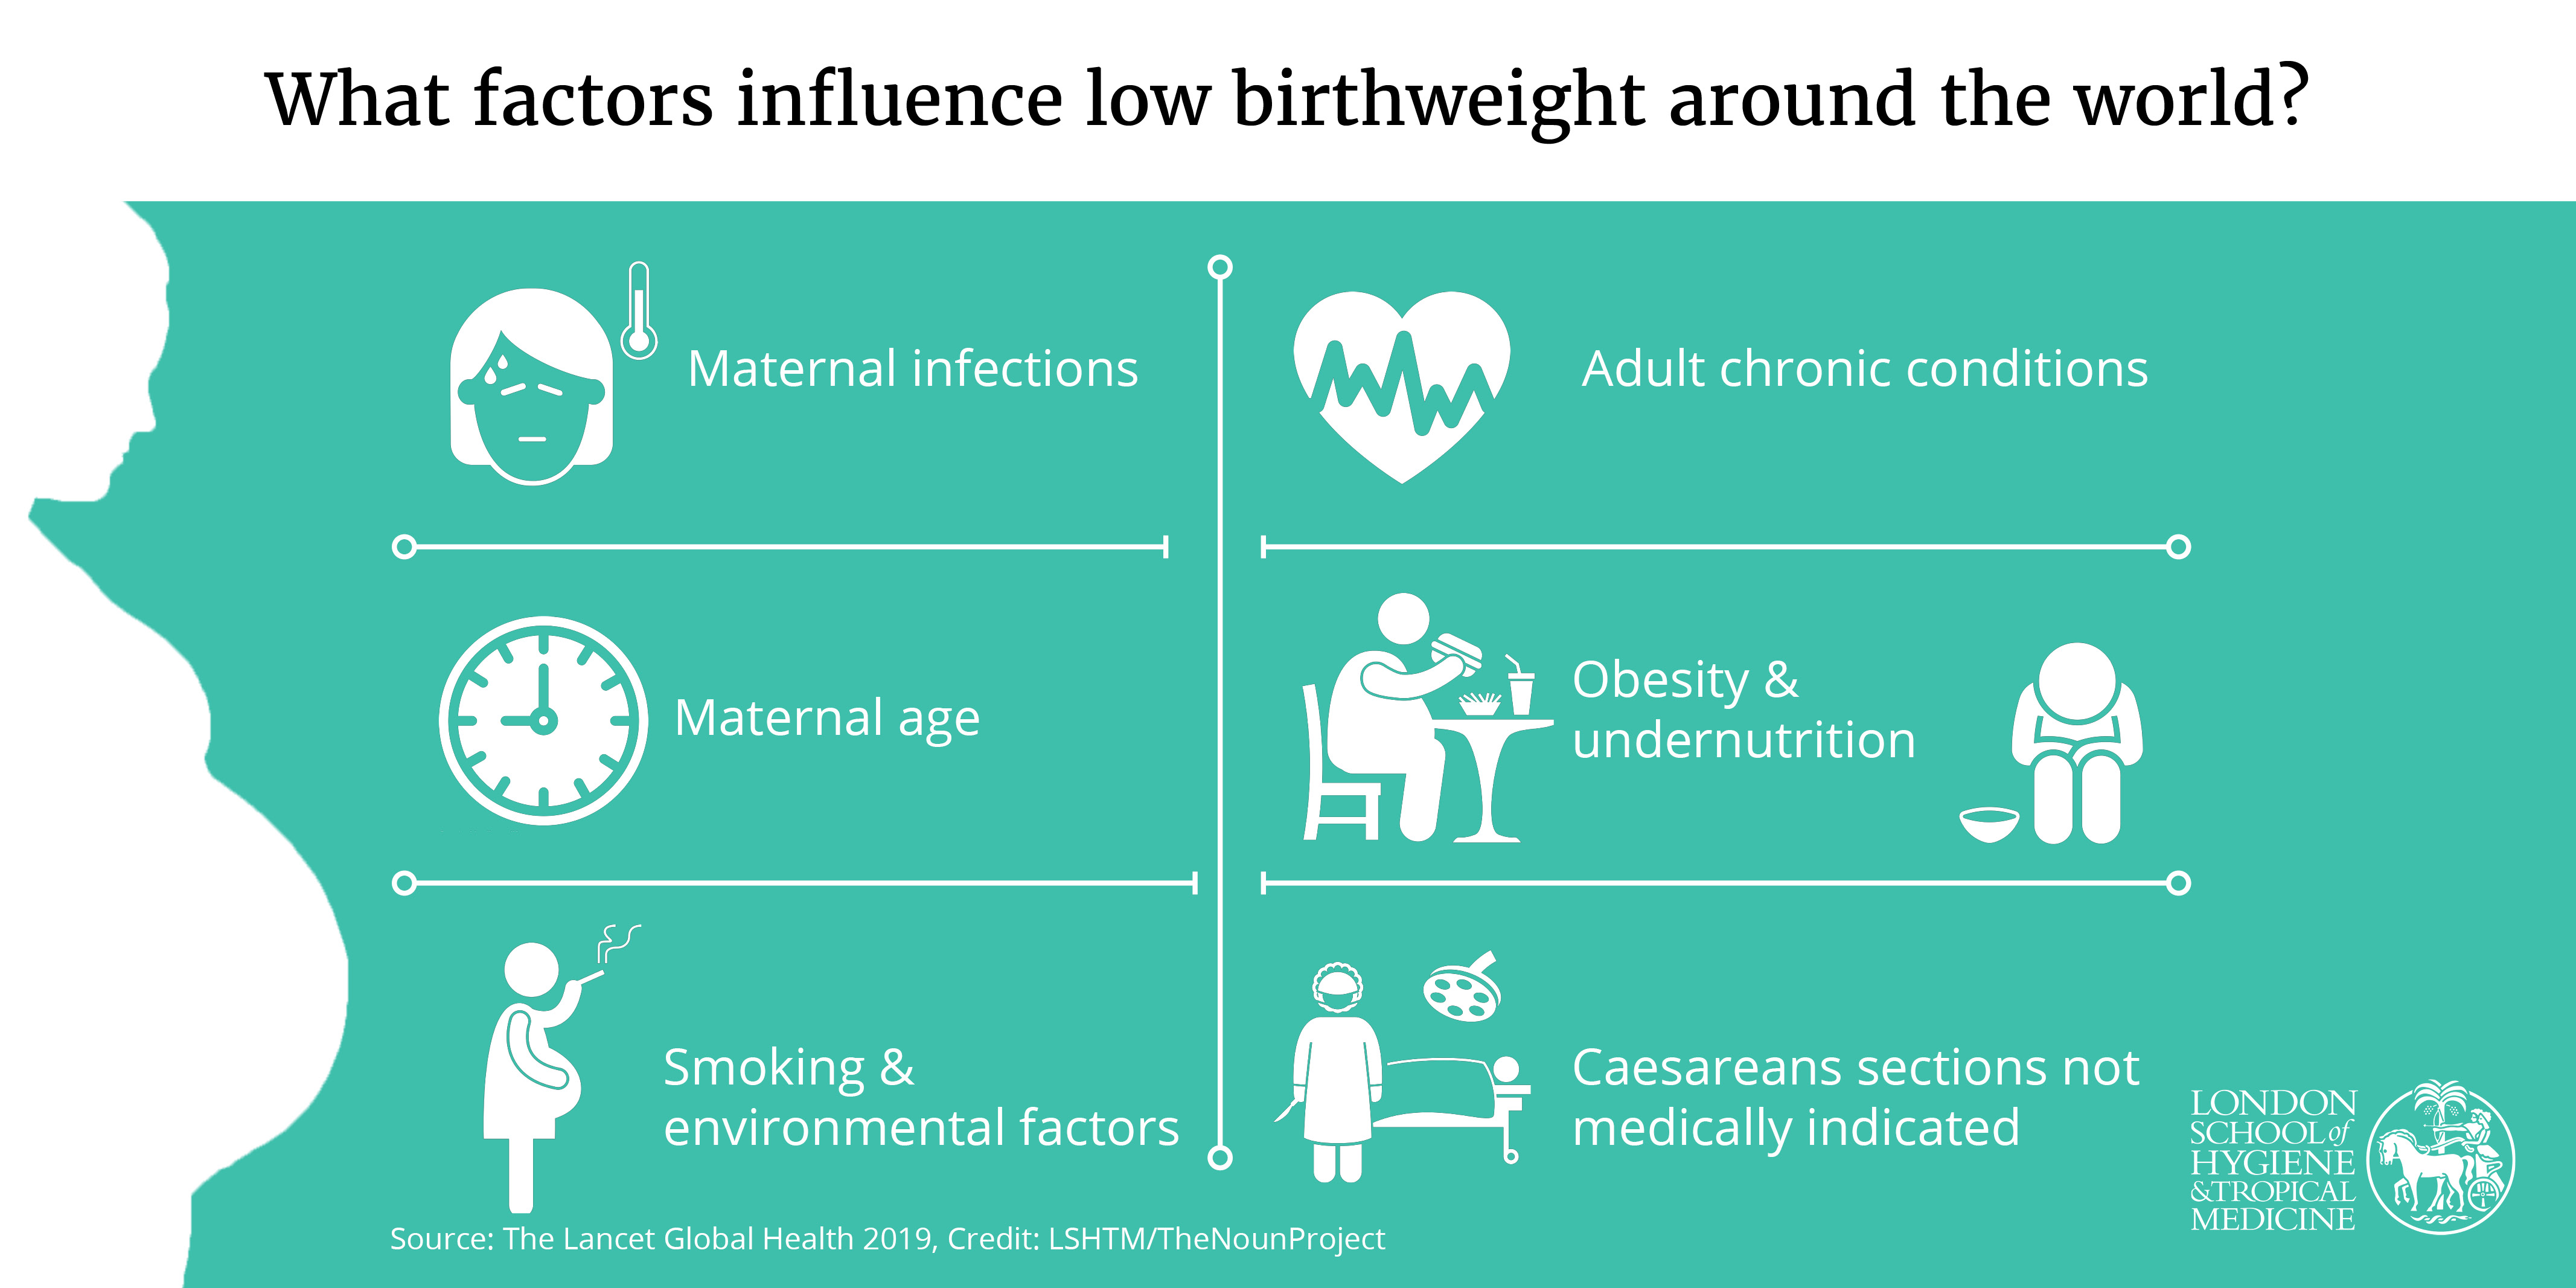 What factors influence low birthweight around the world?